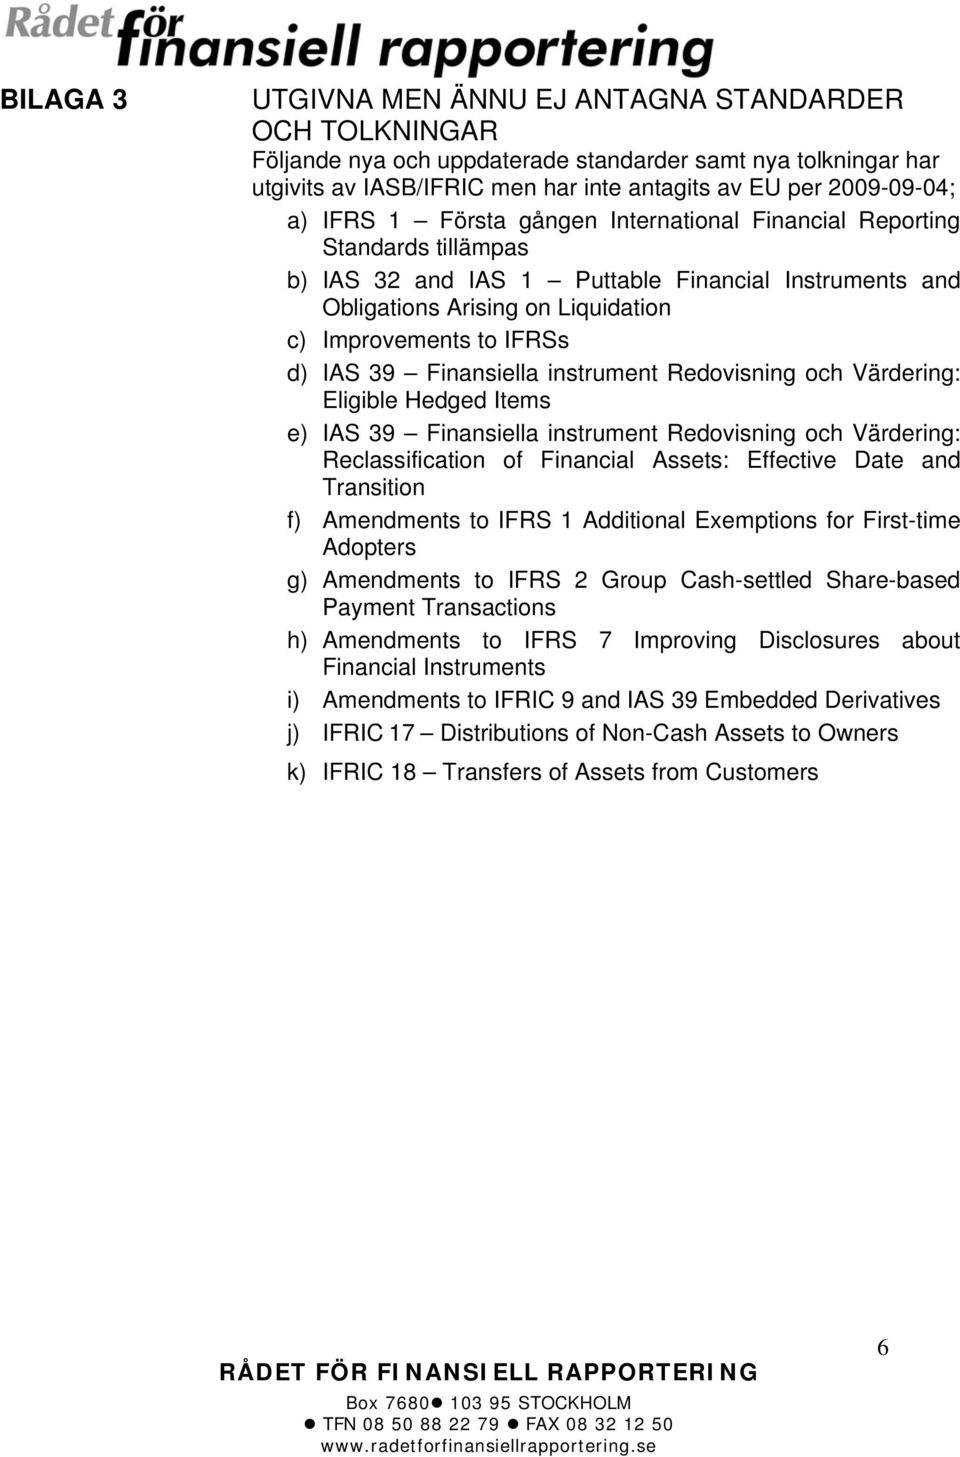 Finansiella instrument Redovisning och Värdering: Eligible Hedged Items e) IAS 39 Finansiella instrument Redovisning och Värdering: Reclassification of Financial Assets: Effective Date and Transition